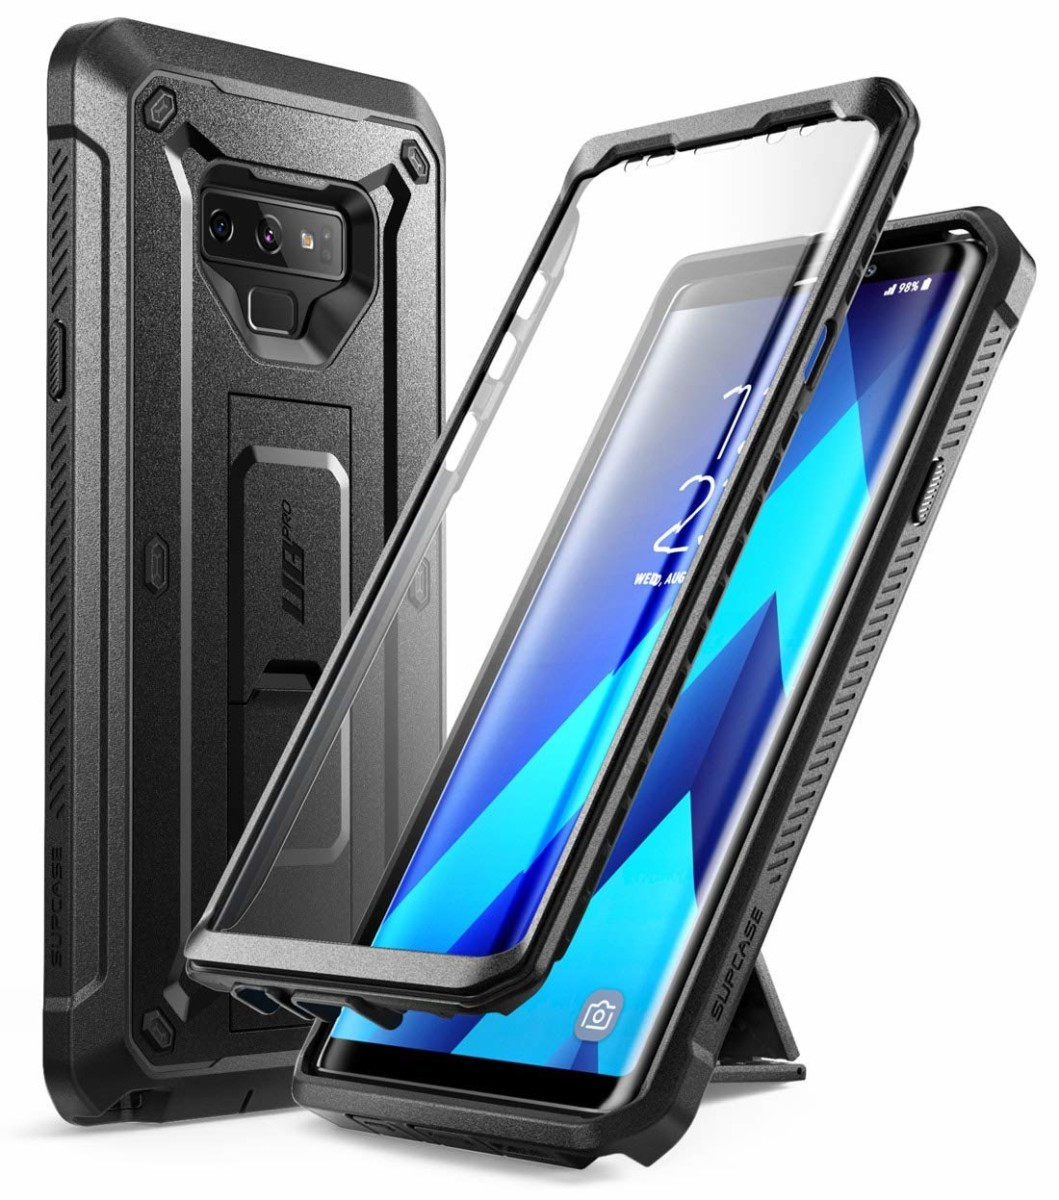 Best Samsung Galaxy Note 9 Cases To Buy In 2019